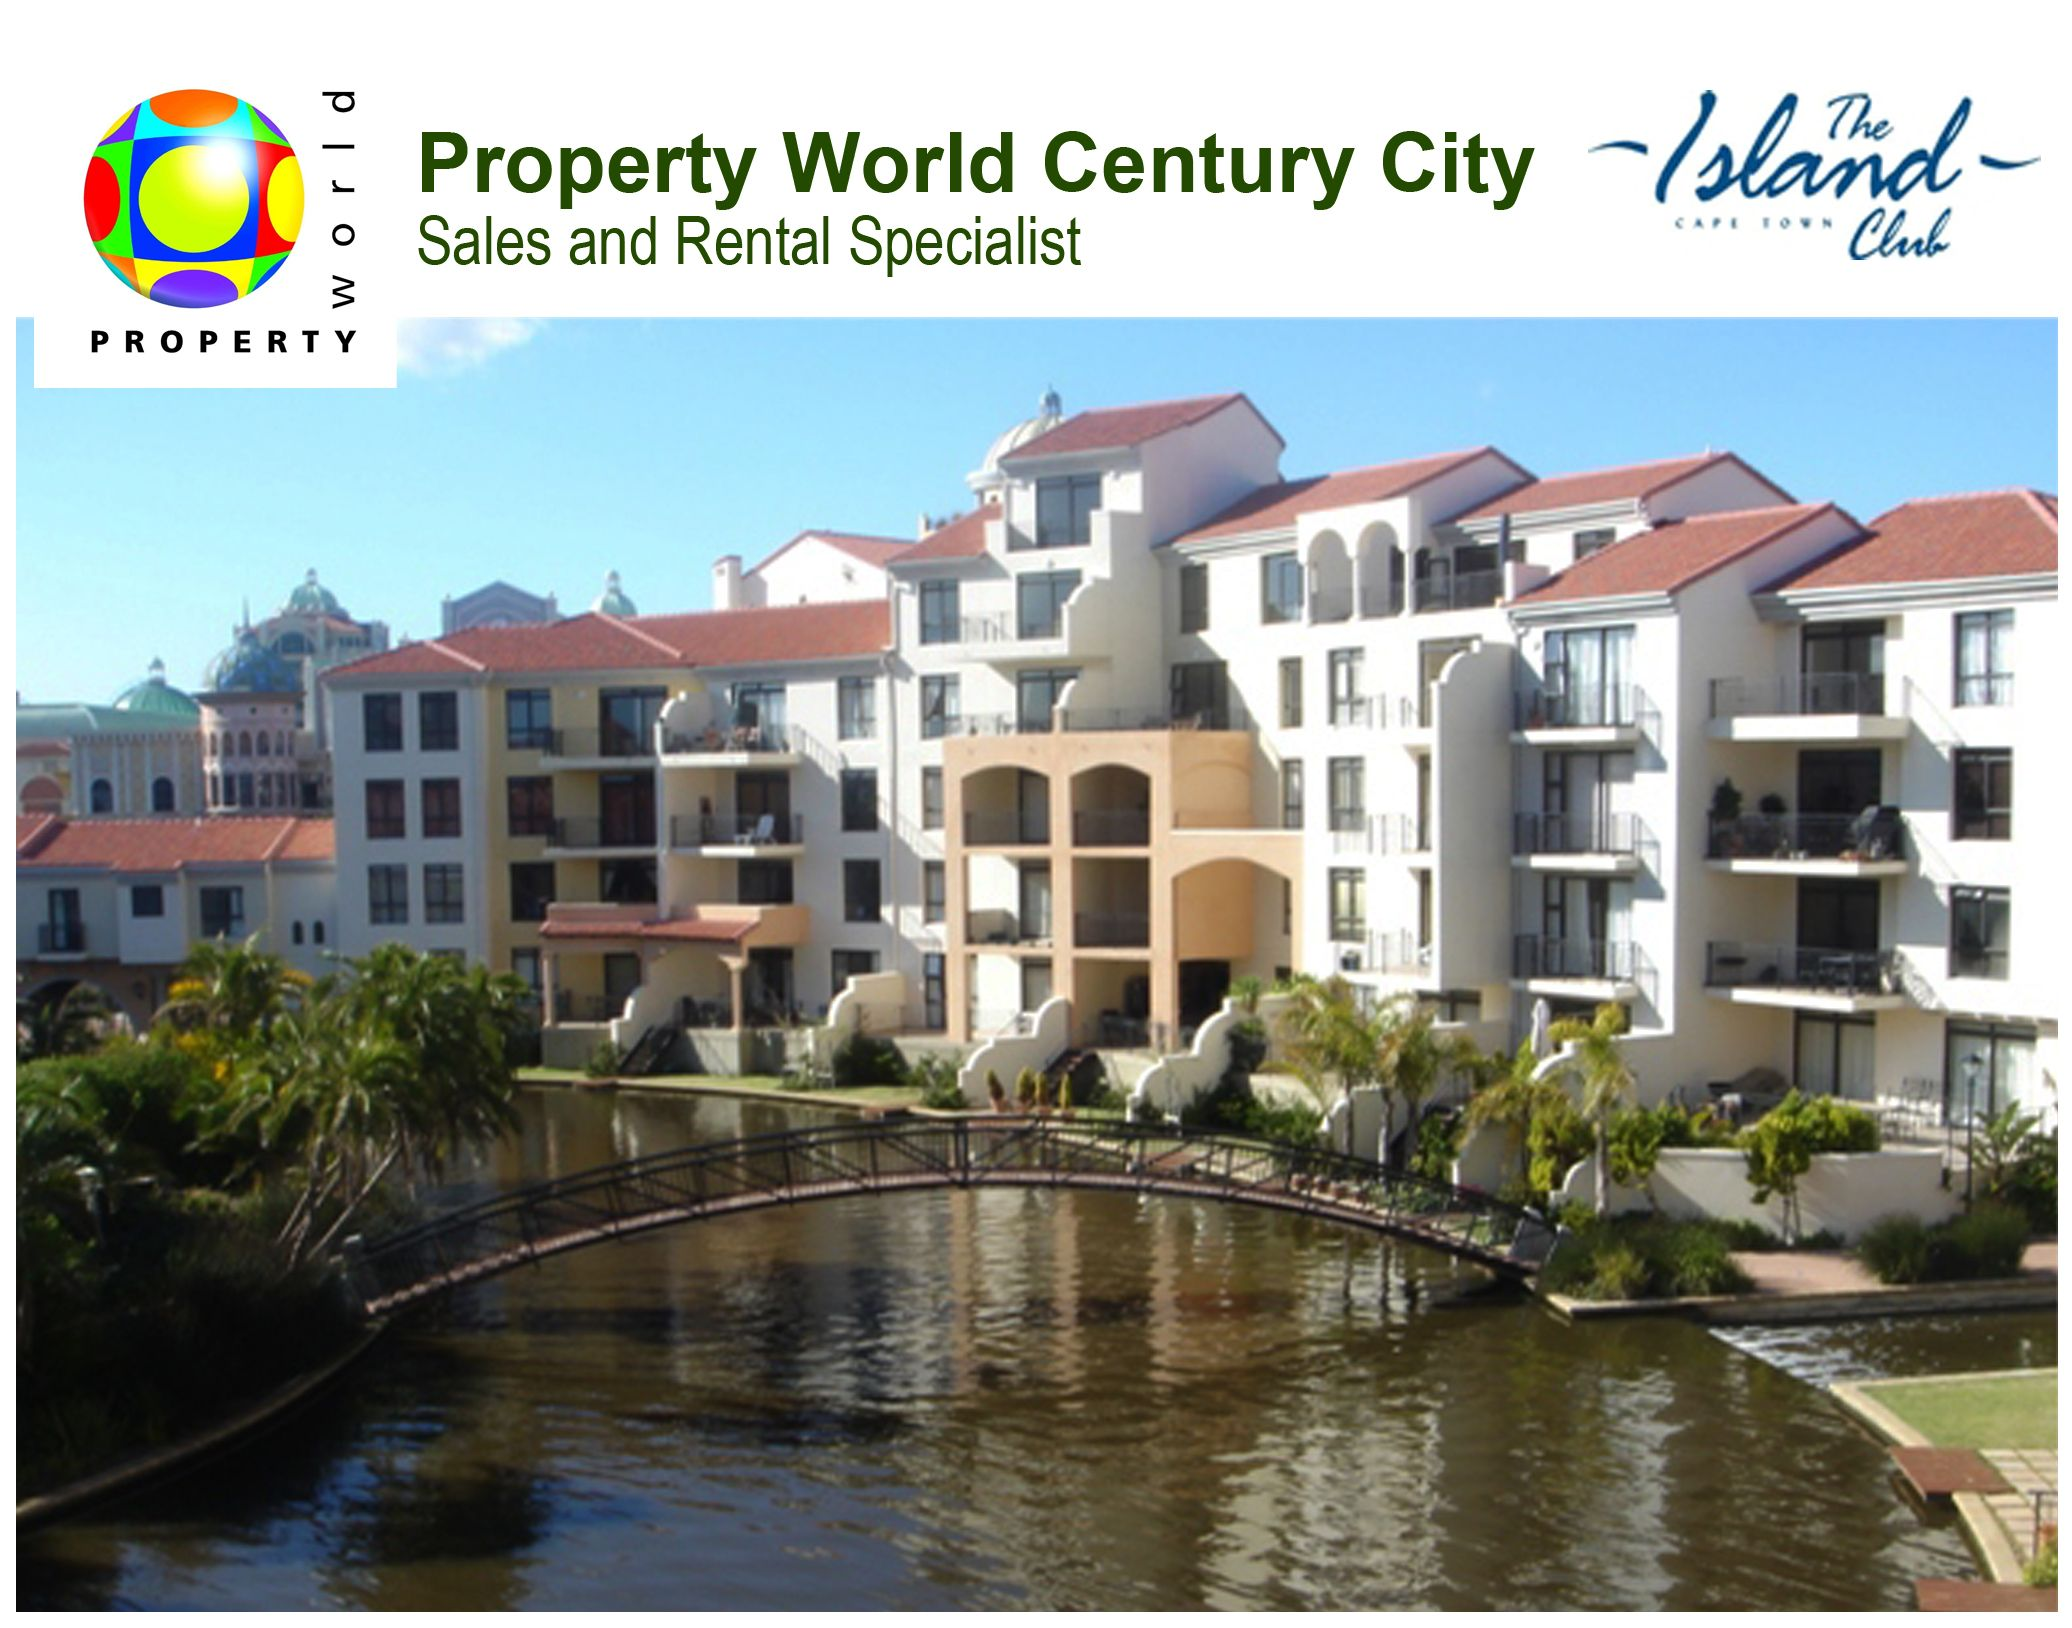 European Style Waterfront Living In The Heart Of Cape Town Residential Complex Century City Residential Apartments